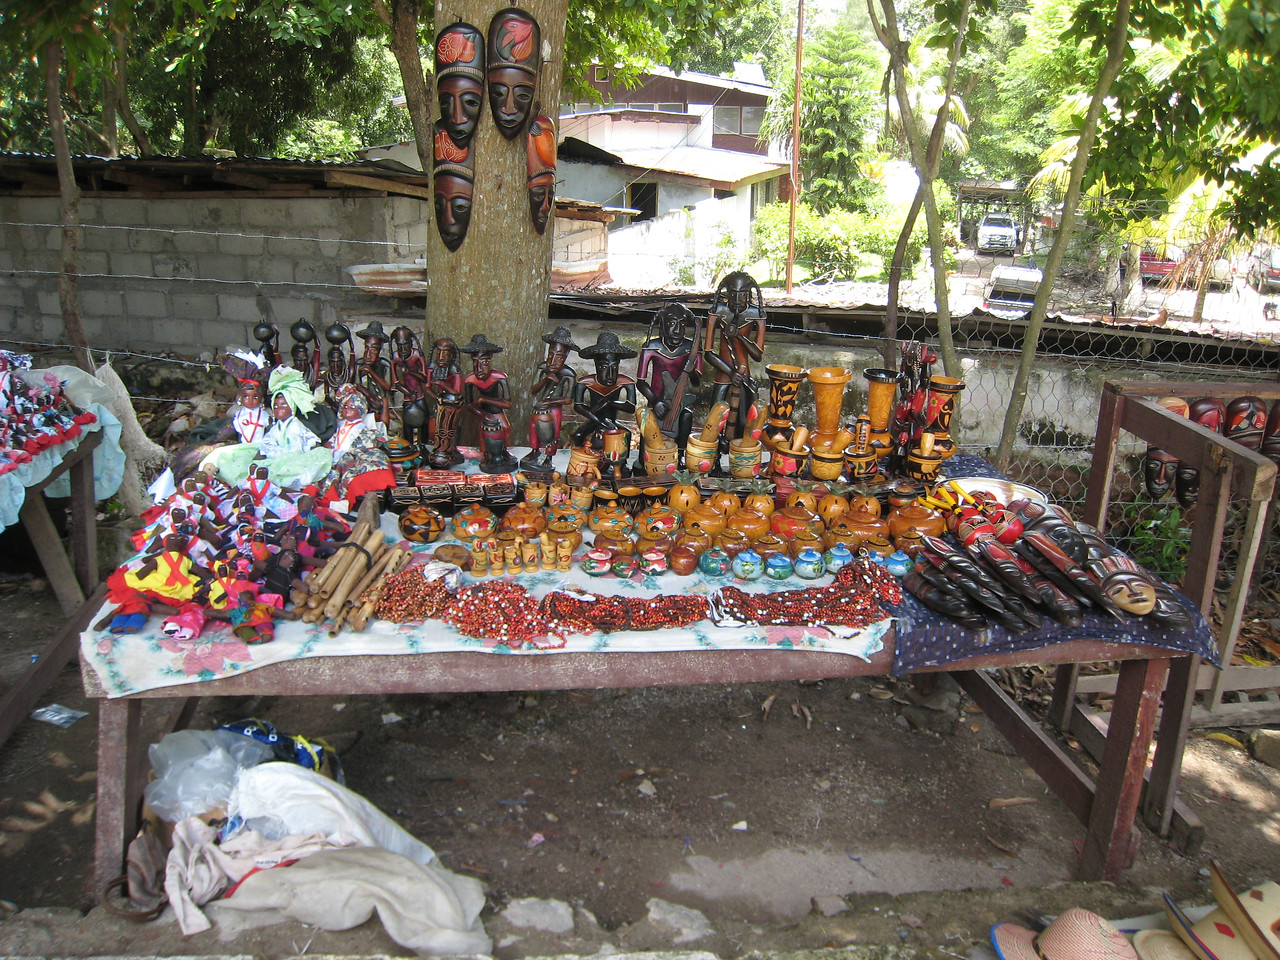 Lots of haitian art for sale - they are a very artistic people